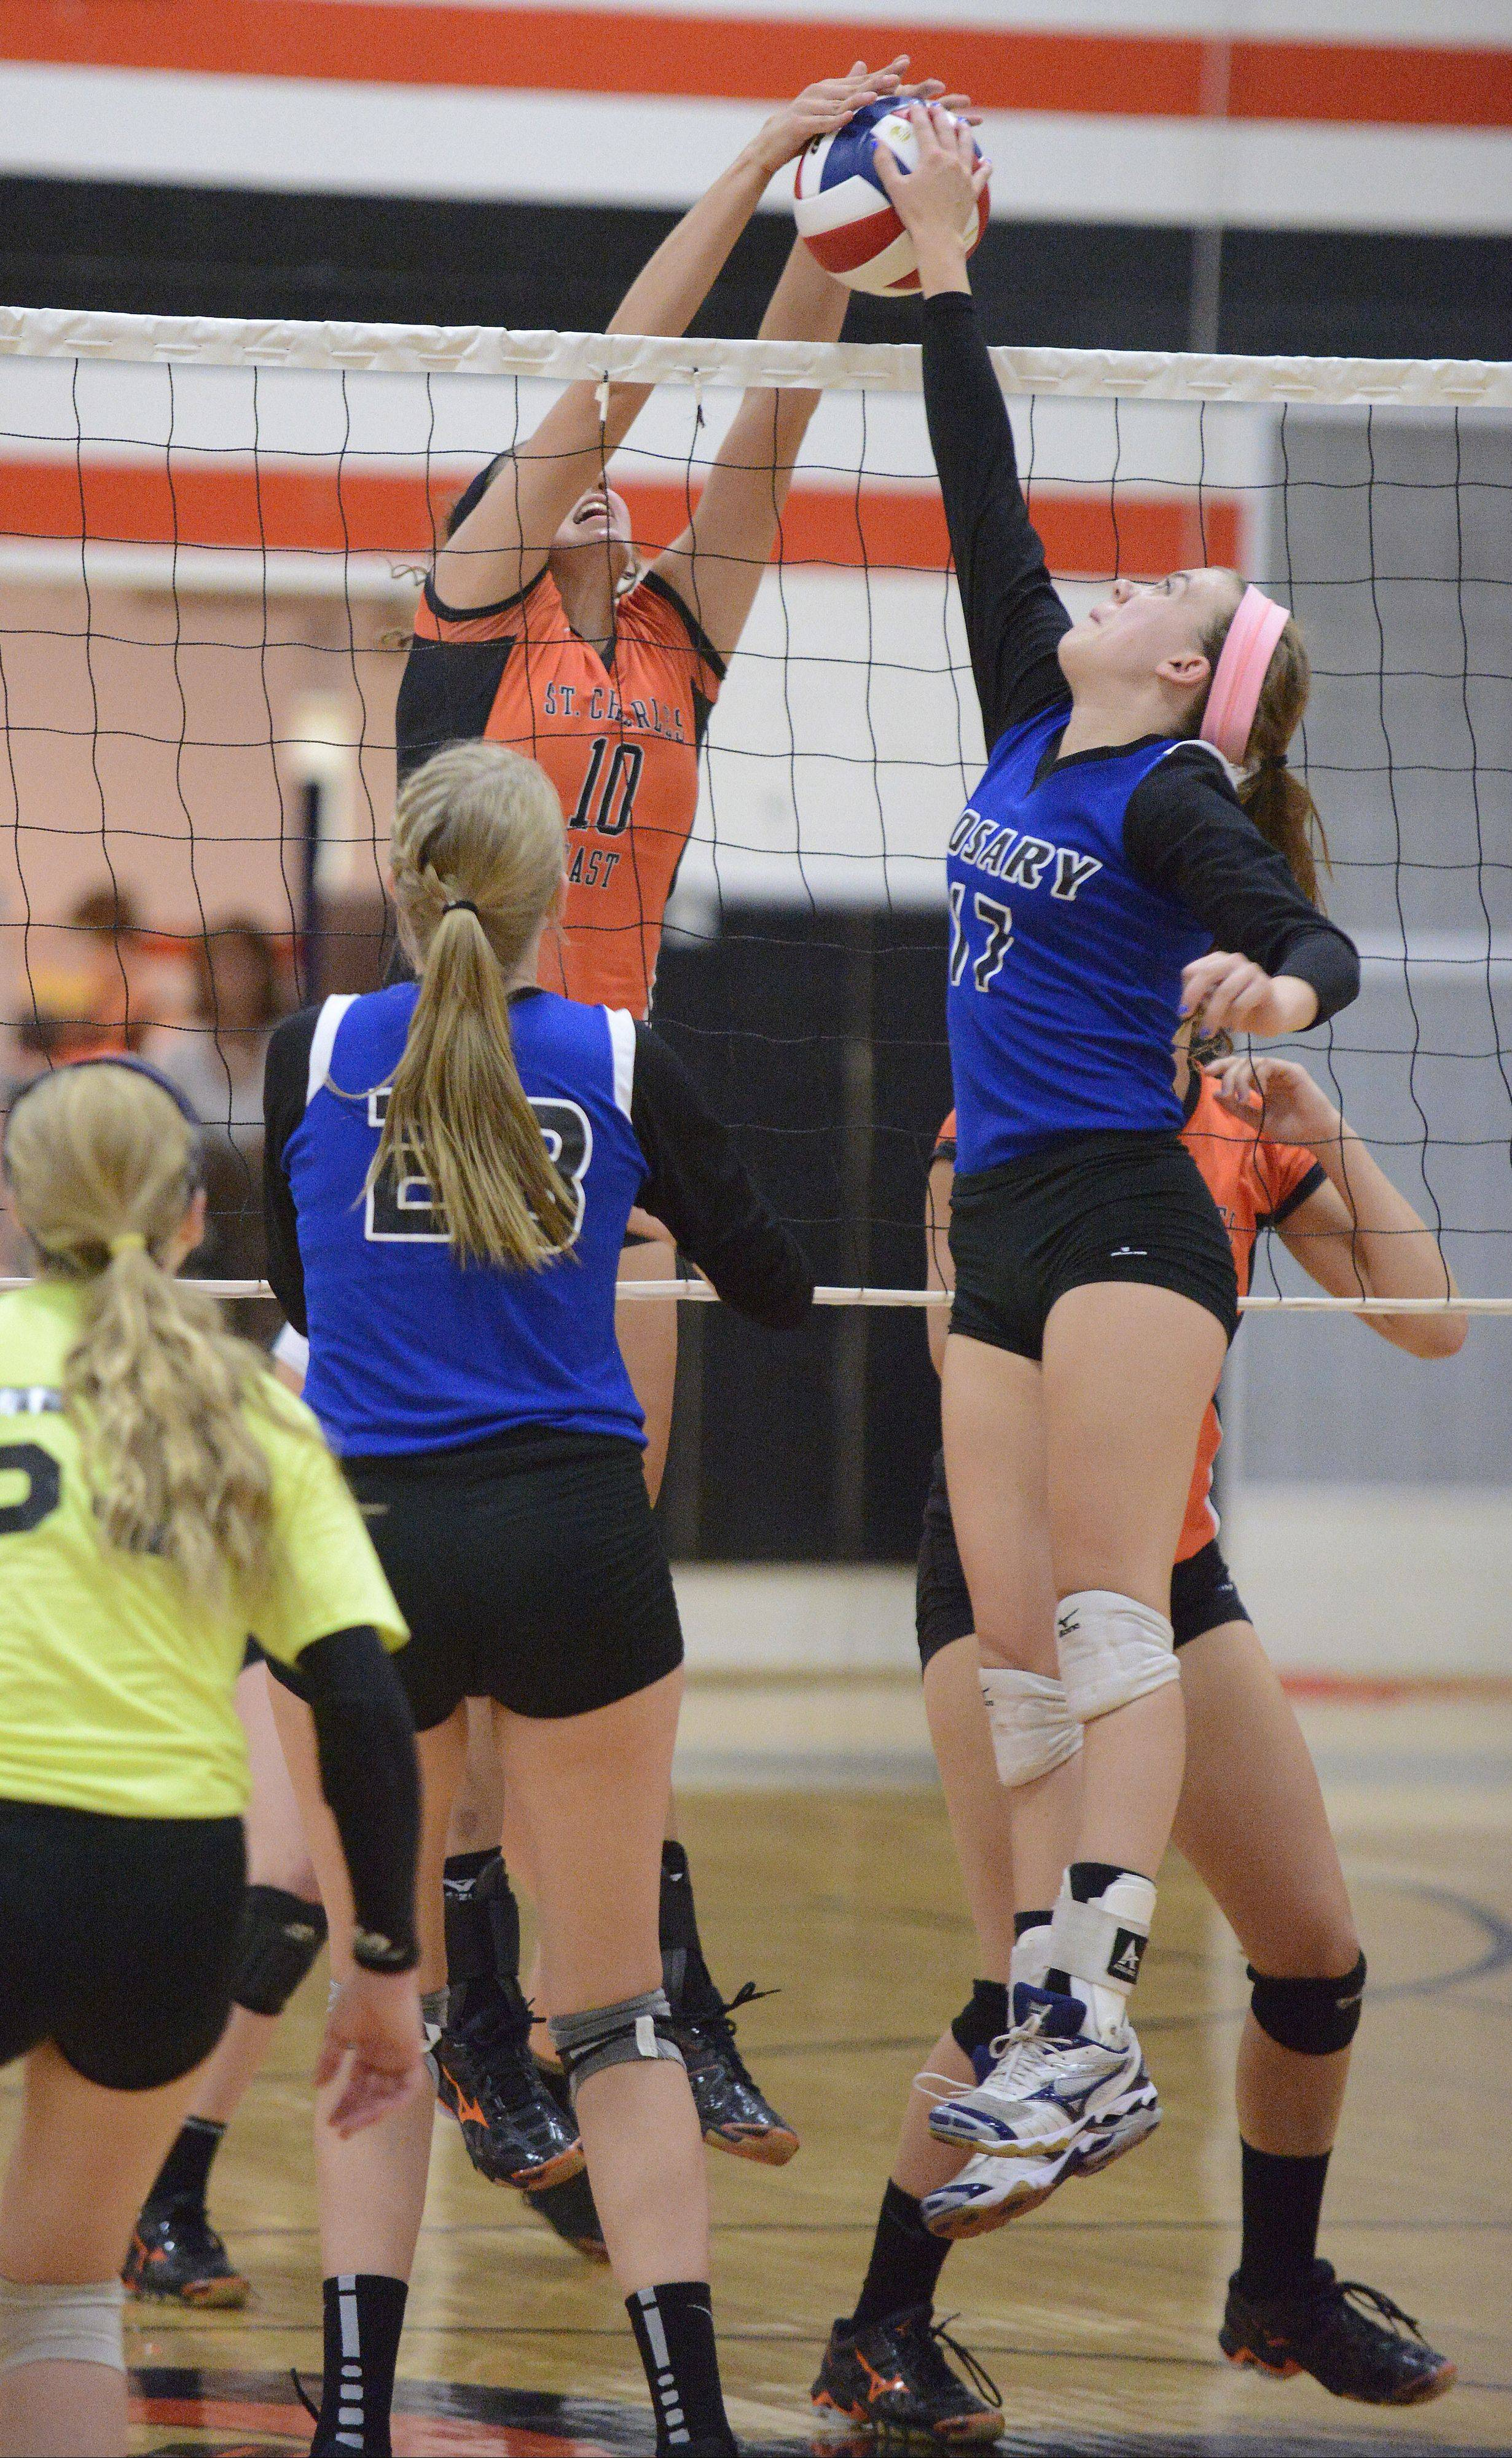 St. Charles East�s Mikaela Mosquera and Rosary�s Grace Konovodoff square off at the net in the third game Wednesday in St. Charles. Rosary�s Michaela Ping is pictured on the left.